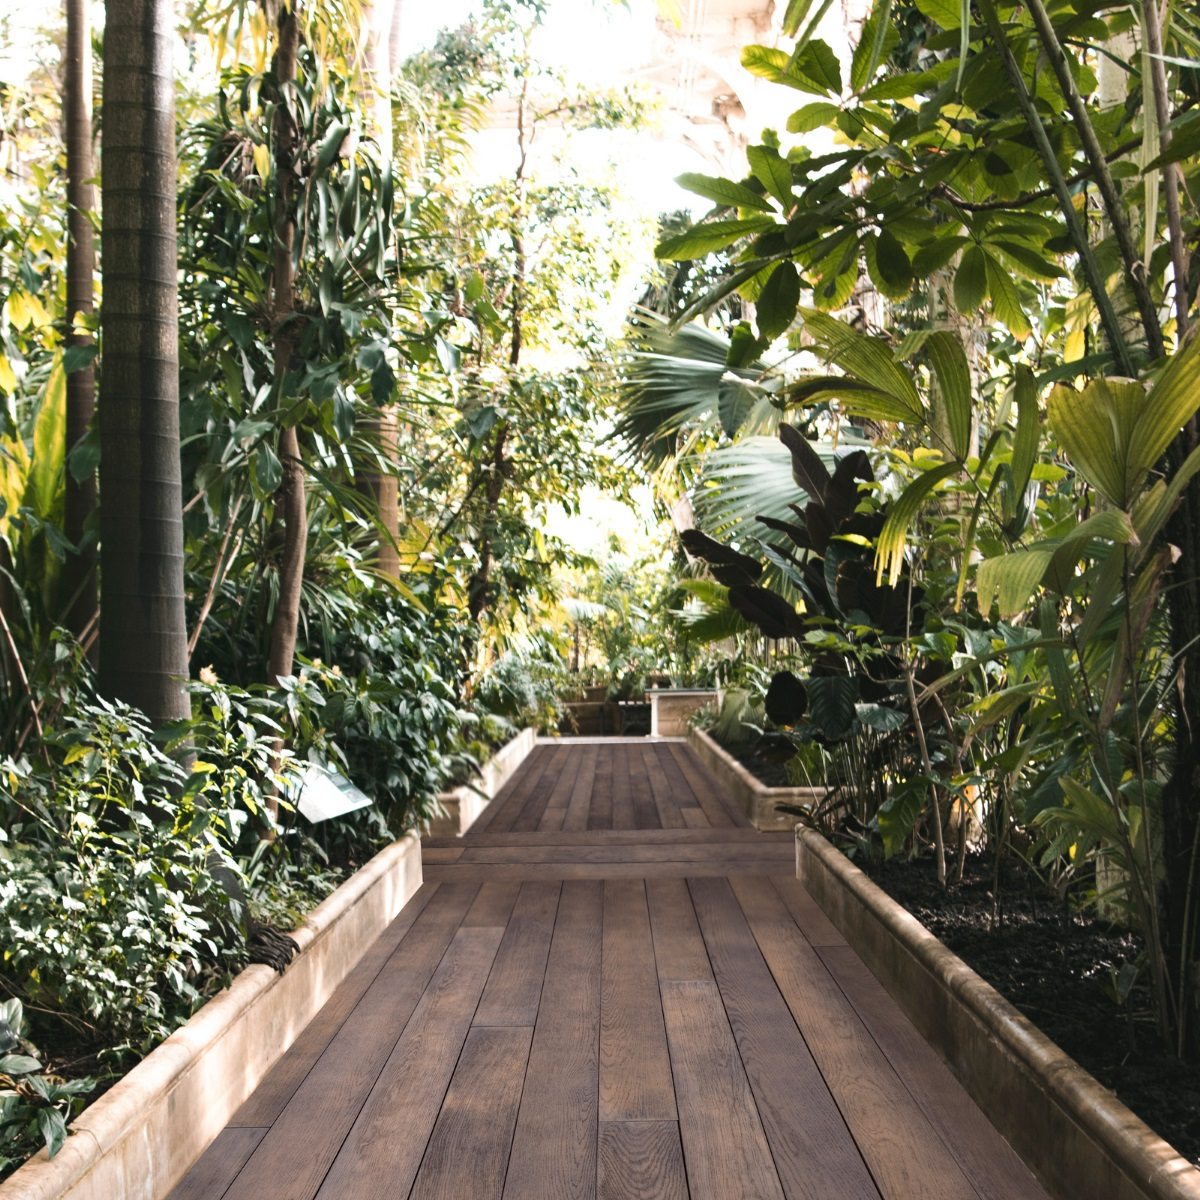 A boardwalk in a botanical greenhouse made from Millboard polyresin decking planks